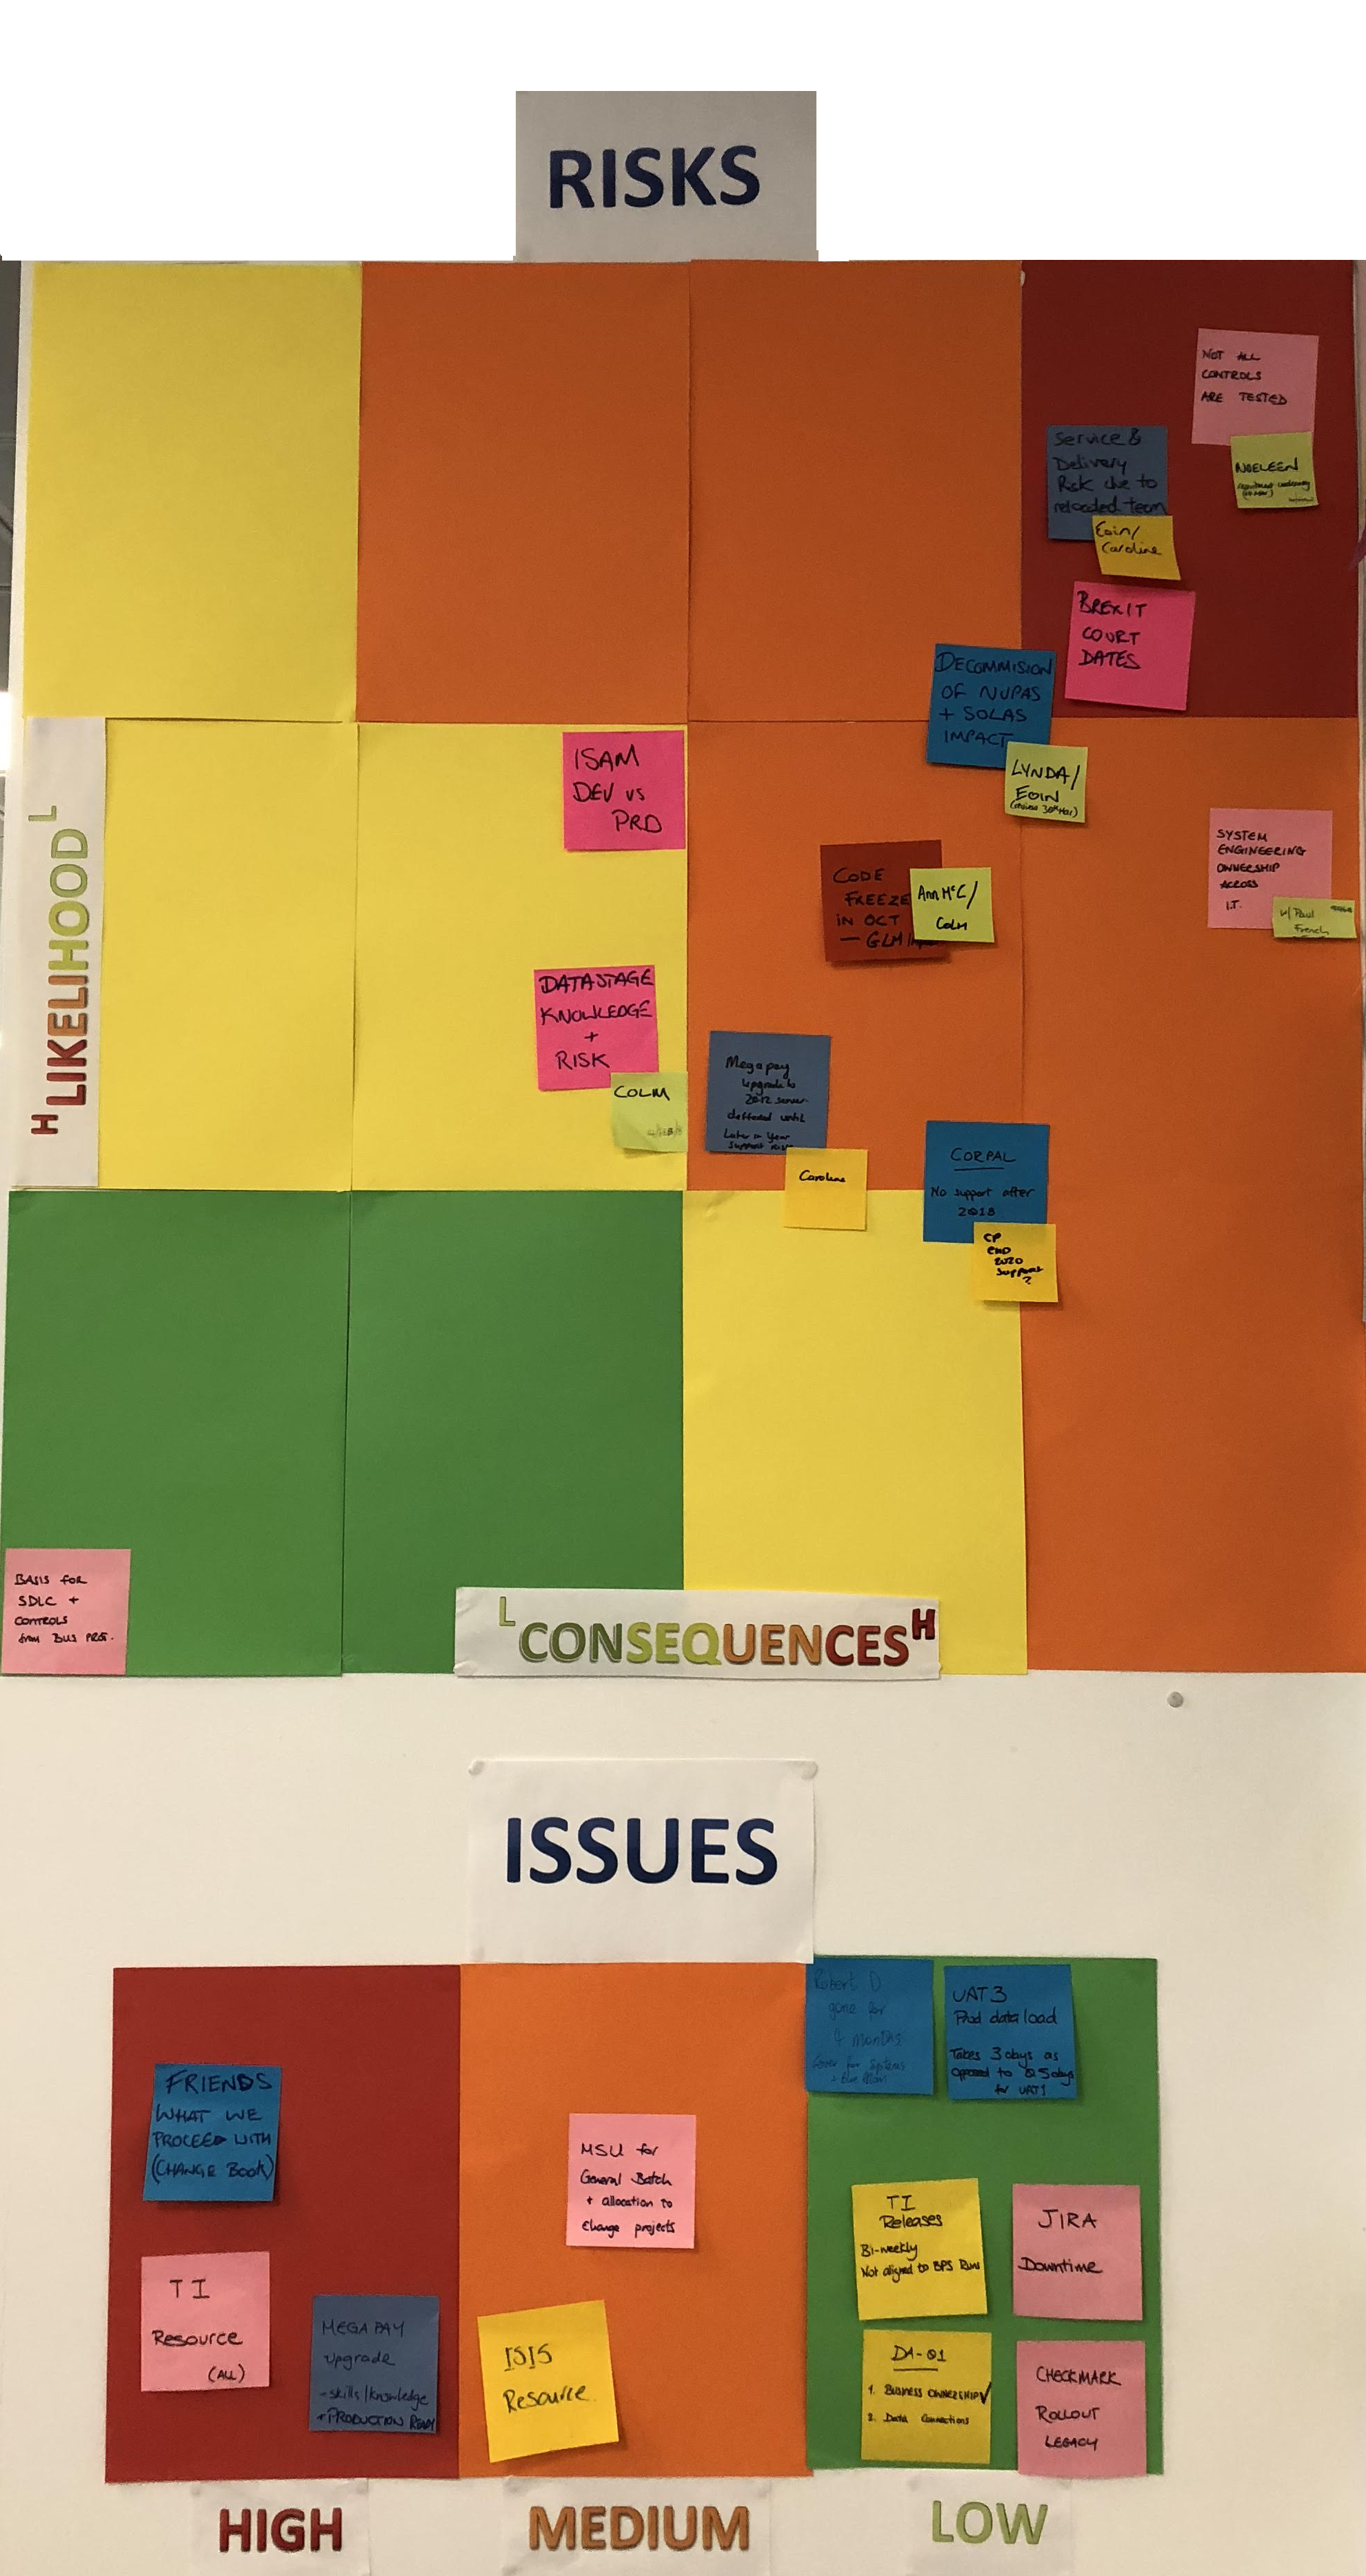 Risks & Issues Wall